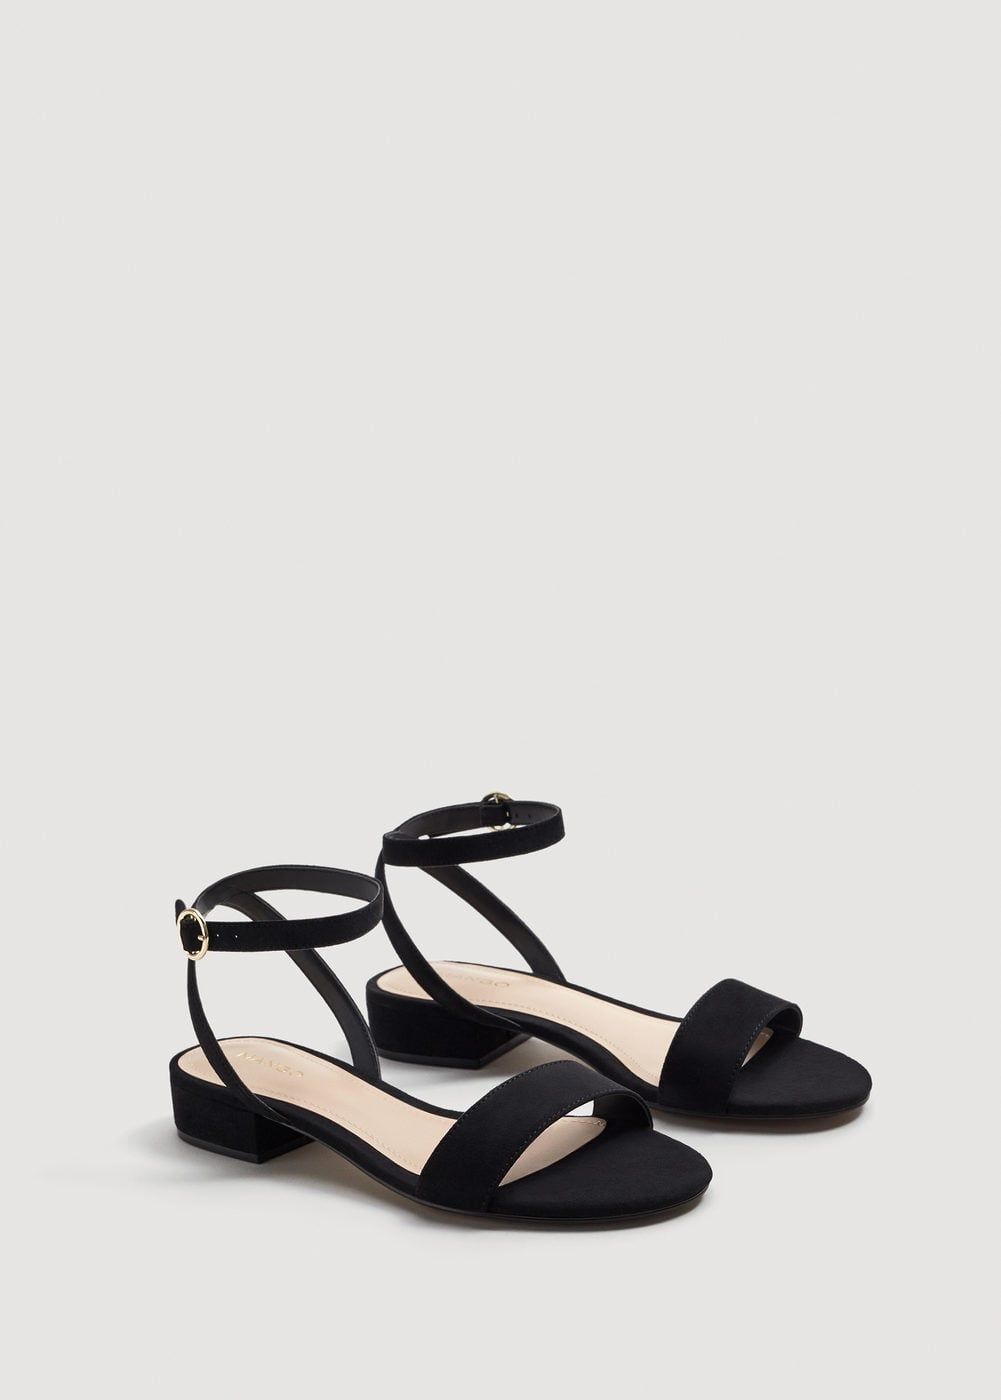 17a8675759bd Ankle-cuff sandals - Women in 2019